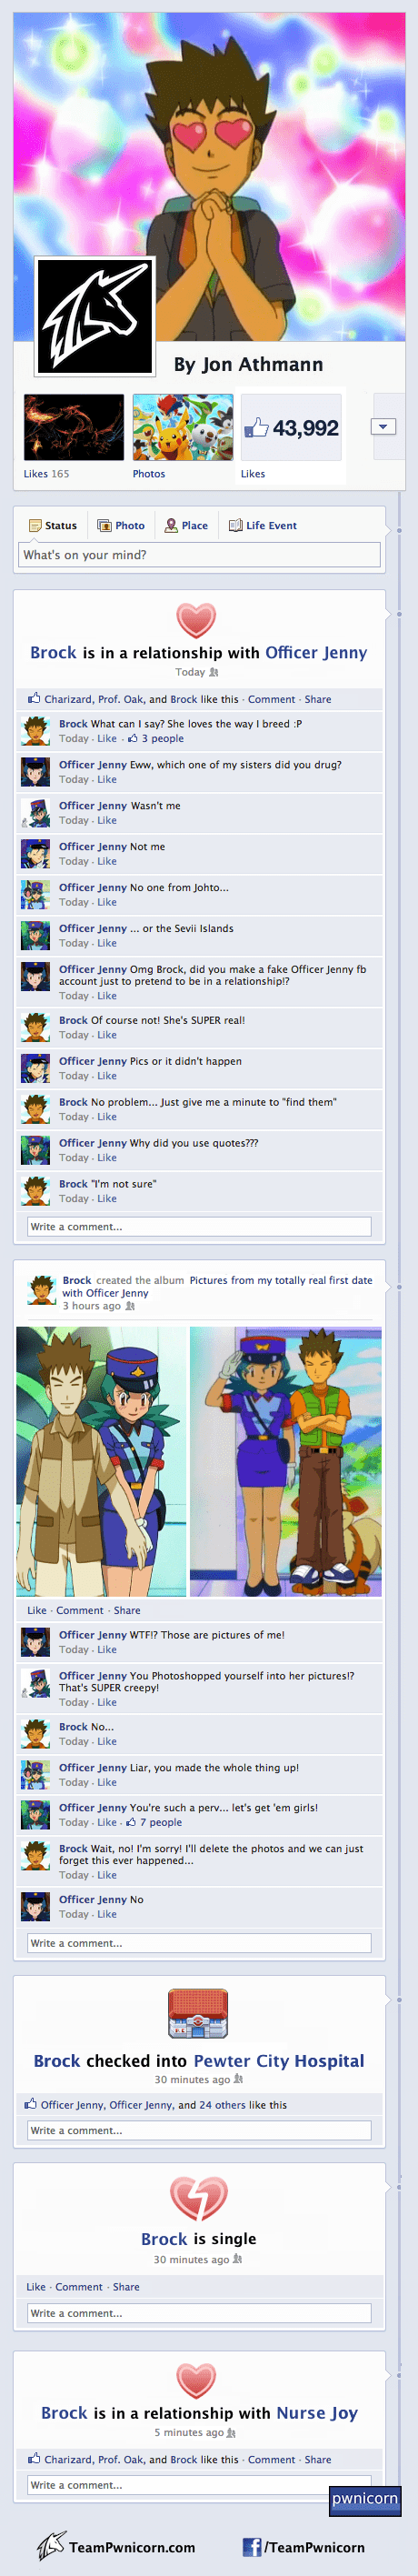 Brock and Jenny Become Facebook Official